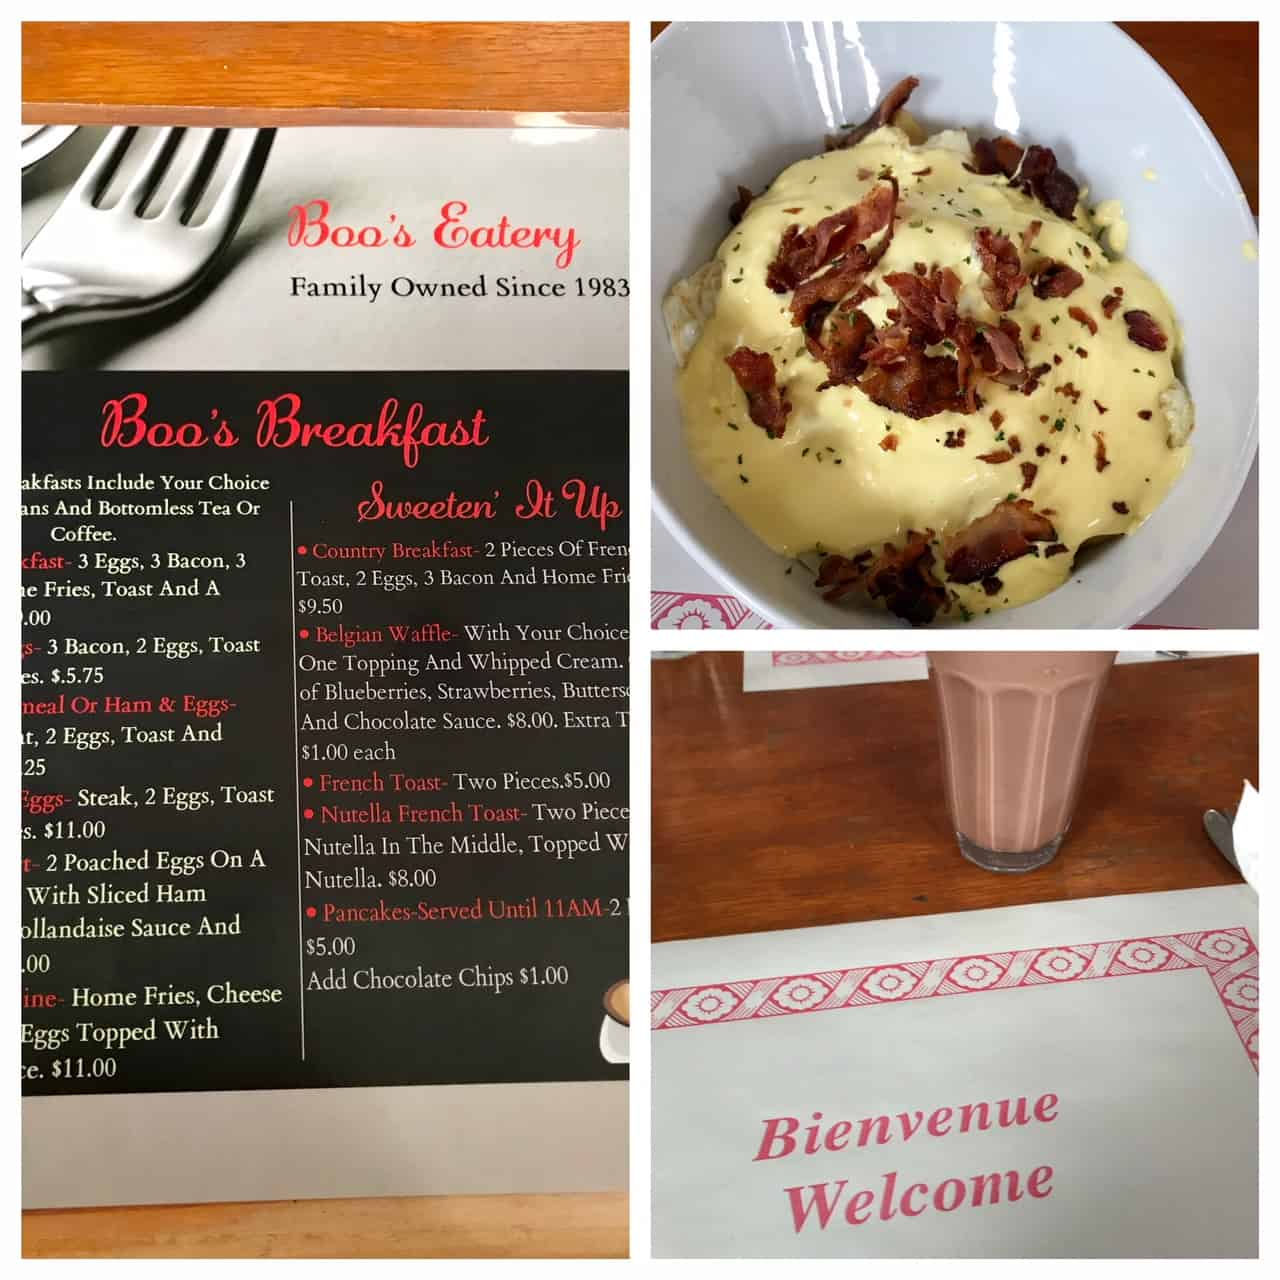 Collage of images from Boo's eatery